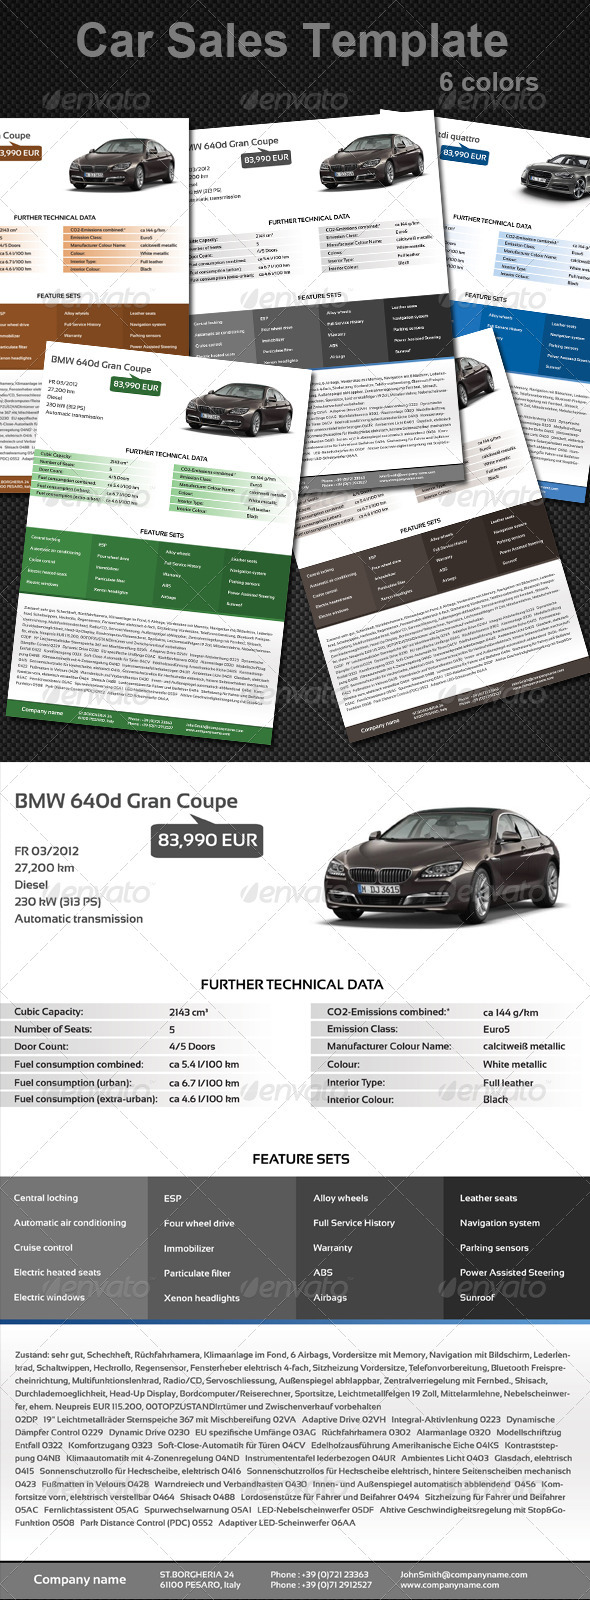 Sell Your Car - Commerce Flyers